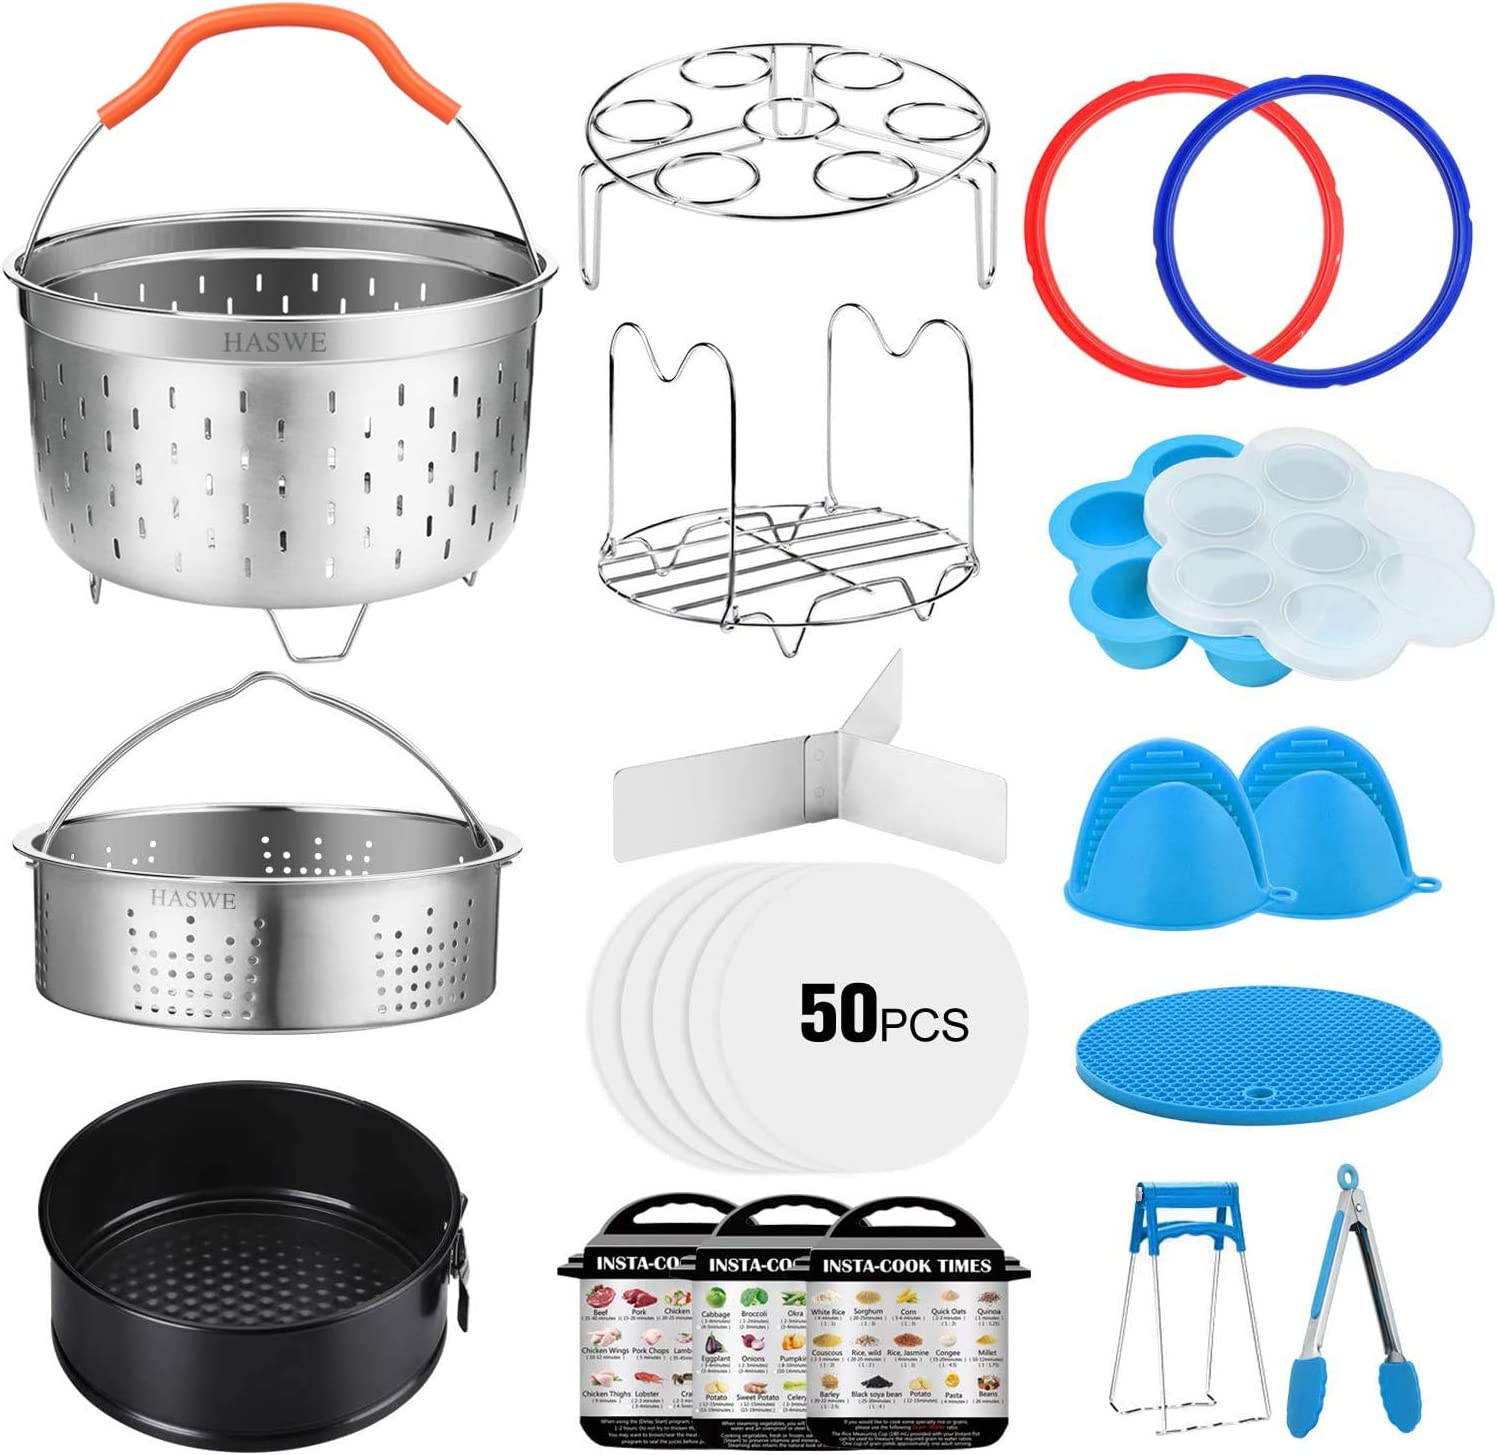 Haswe Accessories Set for Instant Pot 5/6 qt Pressure Cookers,2 Steamer Baskets/Springform Pan/Silicone Egg Bites Mold/Steamer Rack Trivet with handles/2 Sealing Ring/Parchment Paper (Blue)